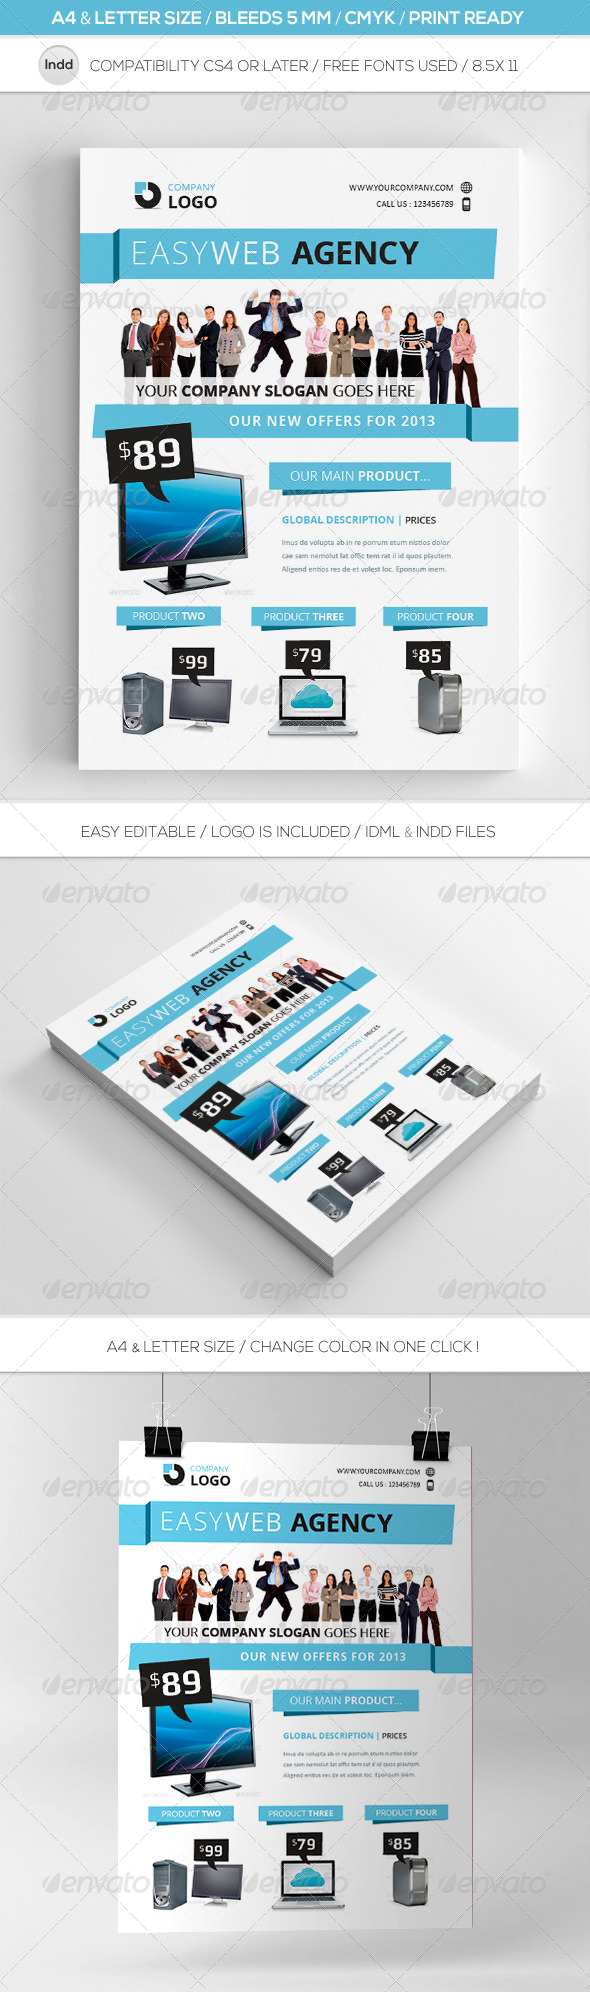 Clean Indesign Commerce Flyer Template A4 & Letter - Commerce Flyers